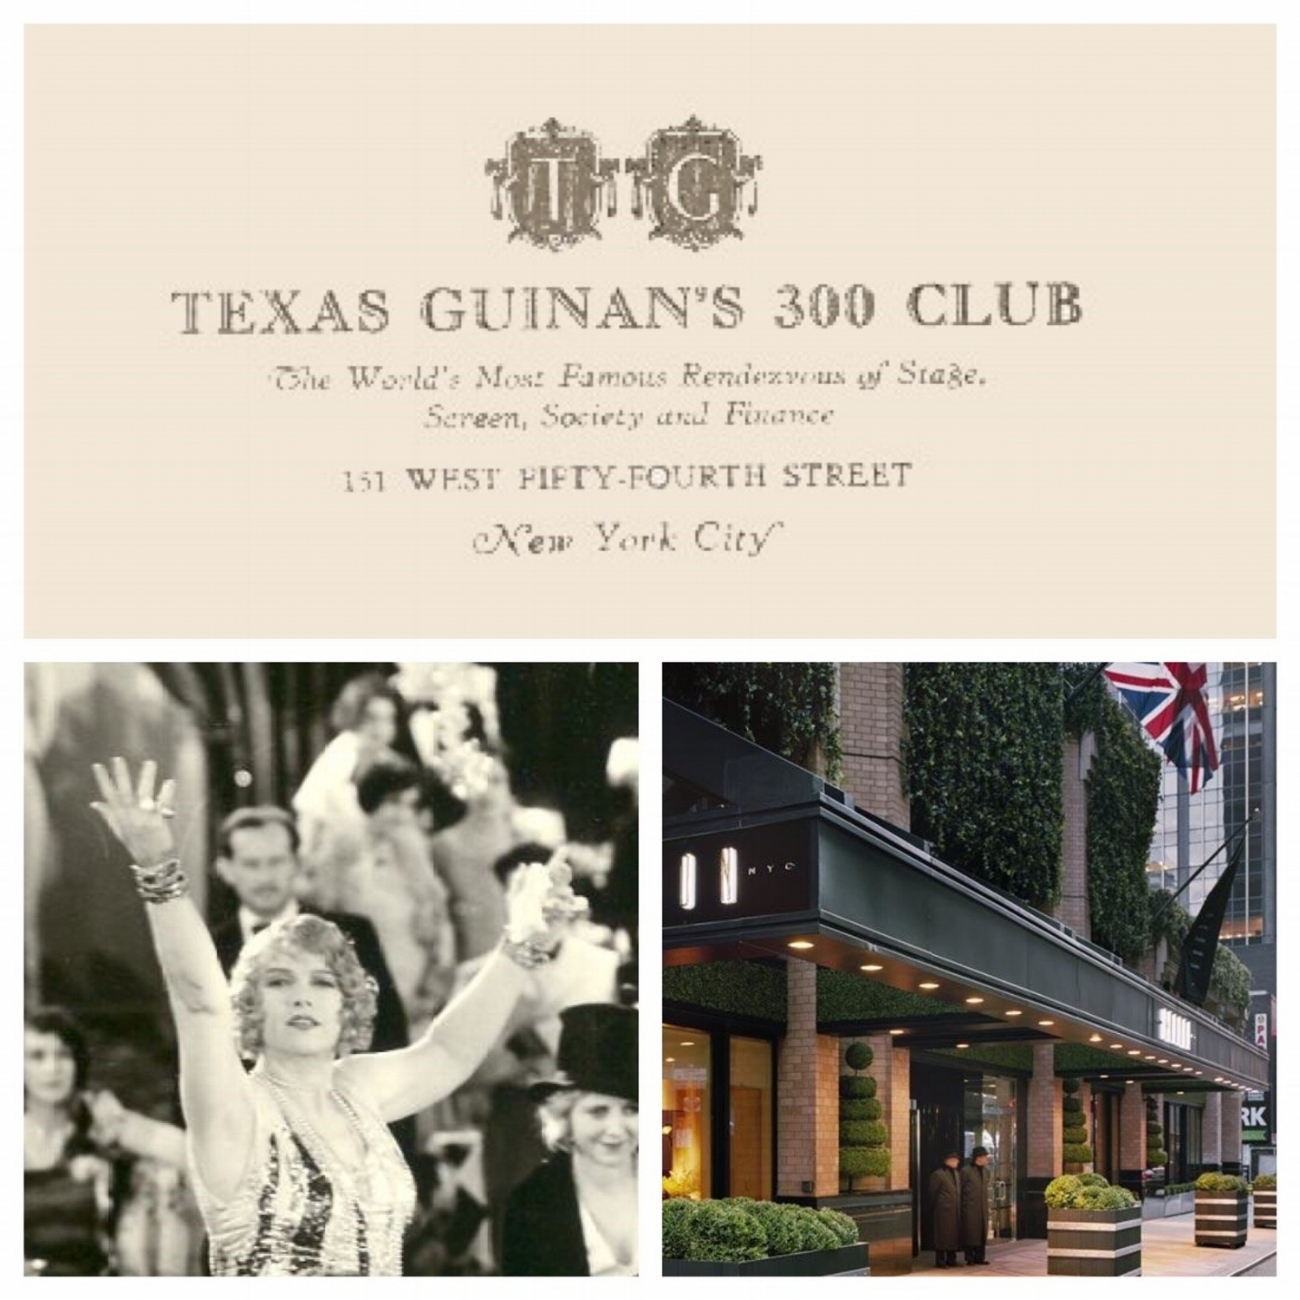 300 Club at 151 W. 54th Street in New York City Texas Guinan was a former acteress (bottom picture on left) who opened a Speakeasy in New York and became the Queen of the Nightclubs.  The place became a hot bed for talent such as Peggy Hopkins Joyce, Pola Negri, Mae West, Al Jolson, Jeanne Eagels, Gloria Swanson, John Gilbert, Beatriz Michelena, Clara Bow, Hope Hampton, Irving Berlin, John Barrymore, Dolores Costello, Leatrice Joy, and Rudolph Valentino , as Broadway and Hollywood agents would constantly mingle with the dancers, musicians and artists that would frequent the club.  She used to rub shoulders with Prohibition bootleggers, who provided the liquors to the club and were regular clients.  The club does not exists anymore. At its place there is The London NYC today.